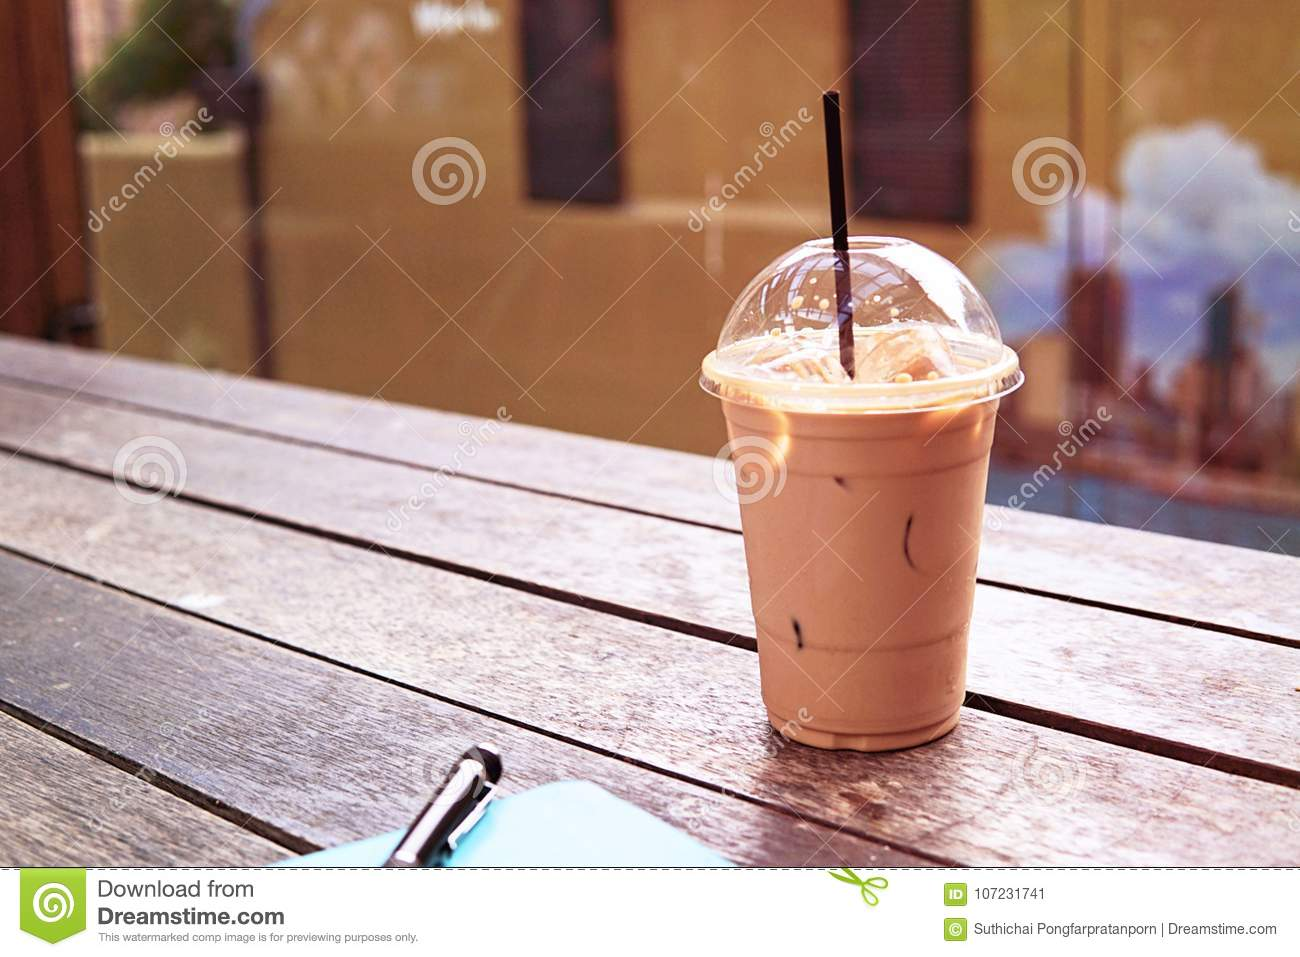 Ice coffee in takeaway cup with notebook and pen on the side. Bo